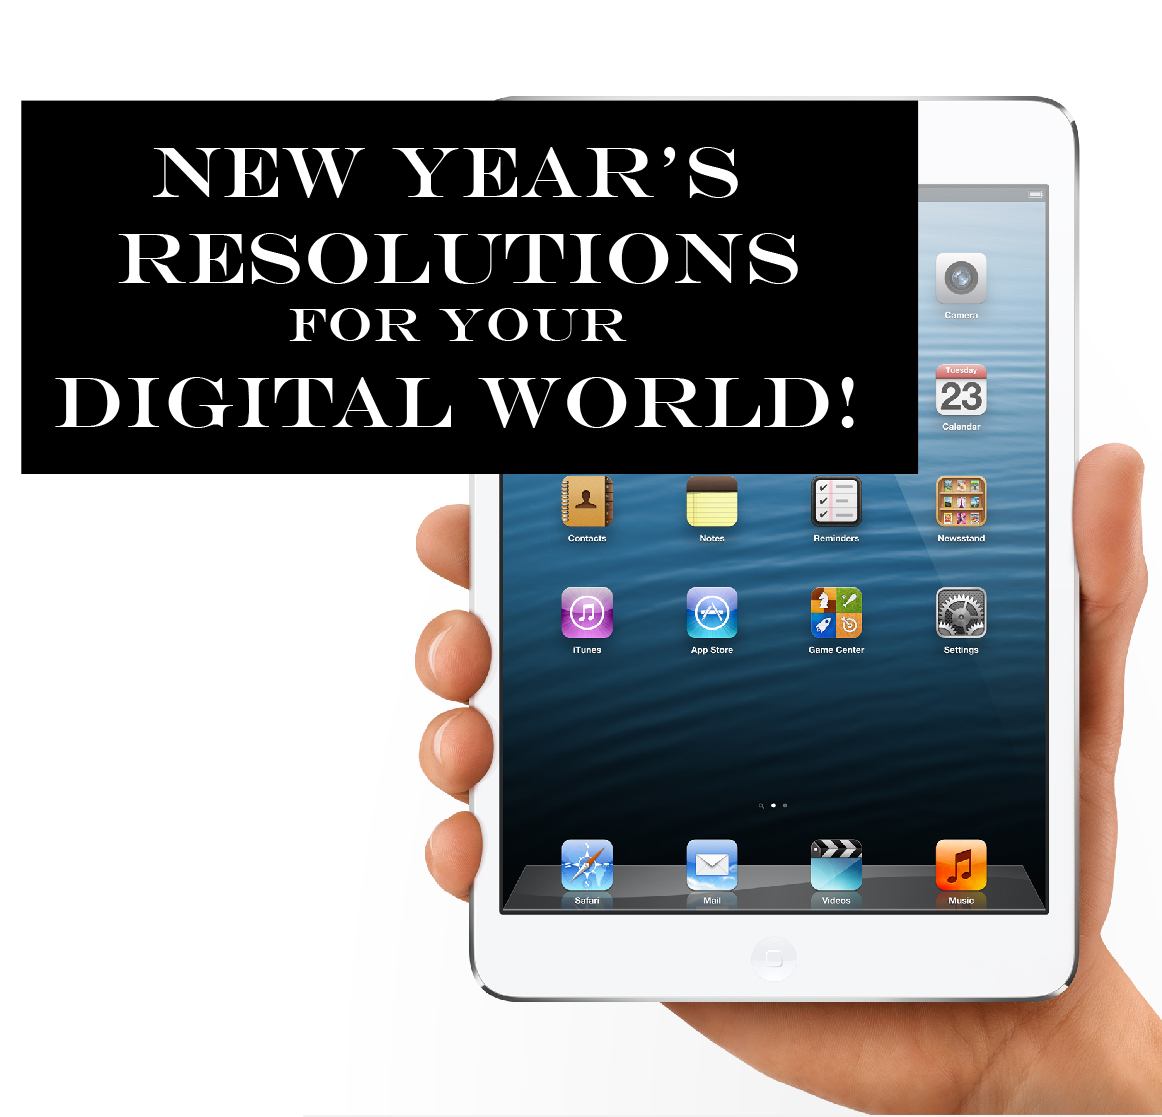 New Years Resolution for Your Digital World!